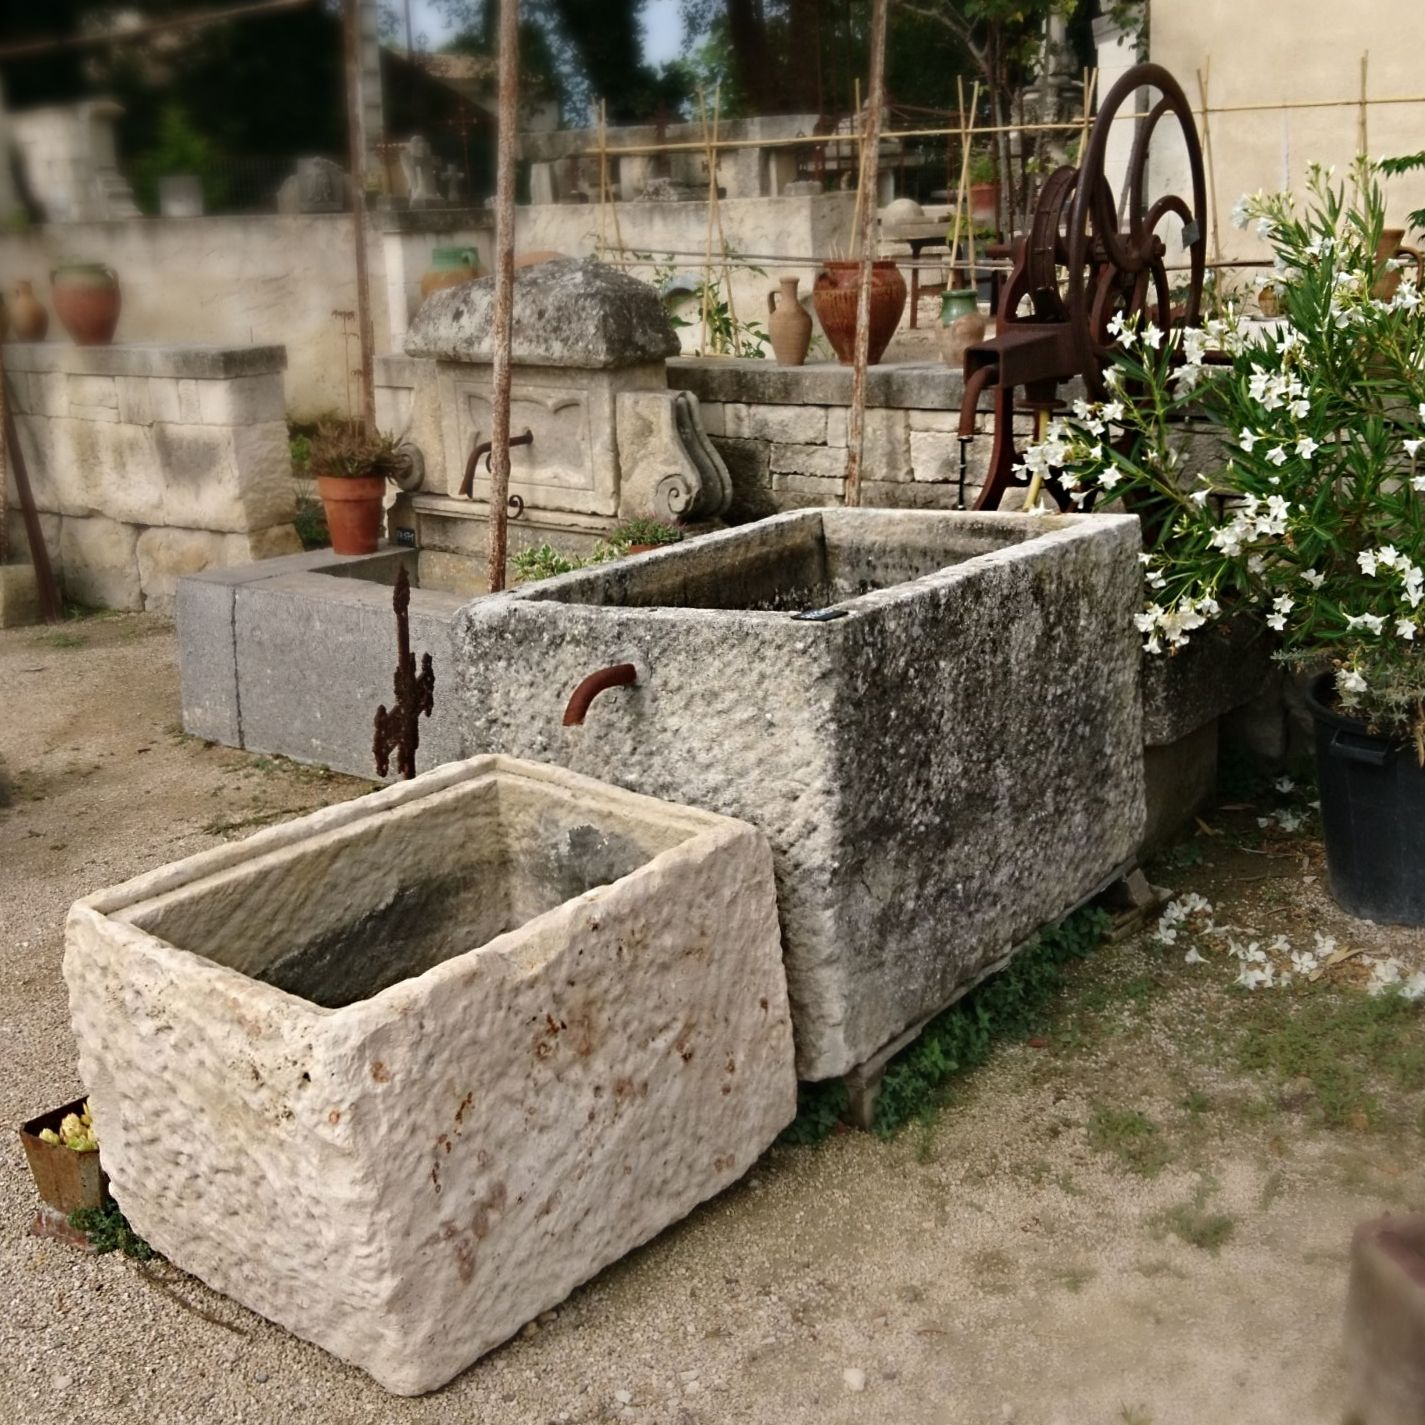 Large garden fountain | Outdoor fountain with 2 antique troughs and an original look.